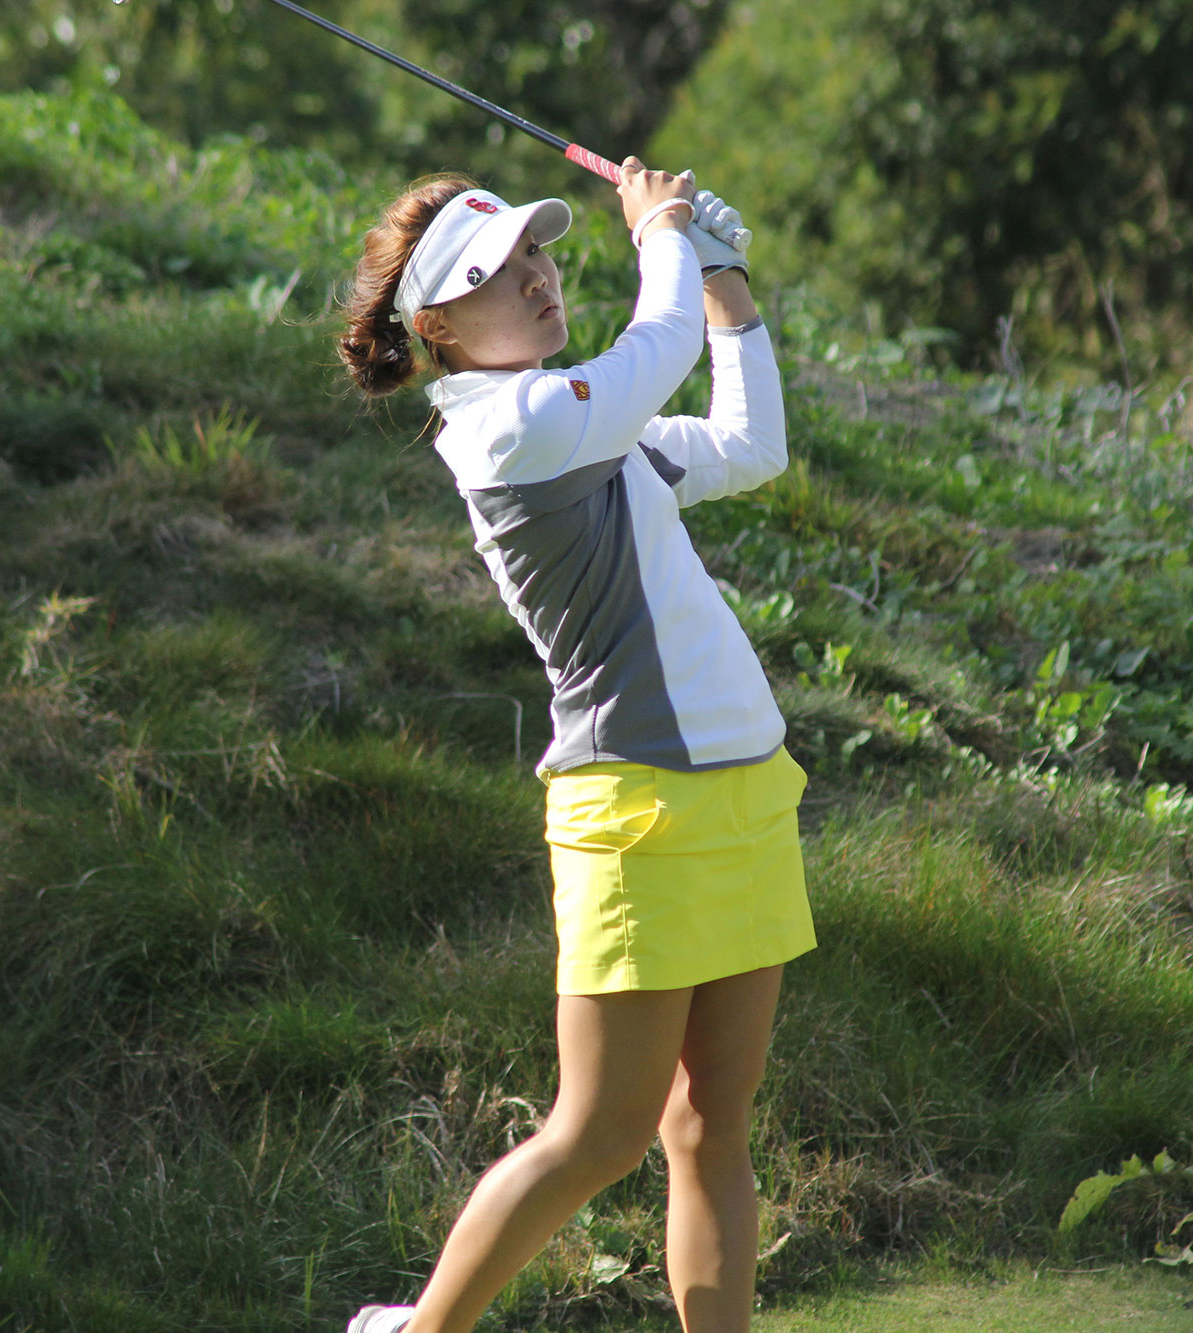 Beating Baylor · Junior Karen Chung has shot for par through 17 holes against Baylor. The Women of Troy lead the semifinal match 4-1. - Photo courtesy of USC Sports Information